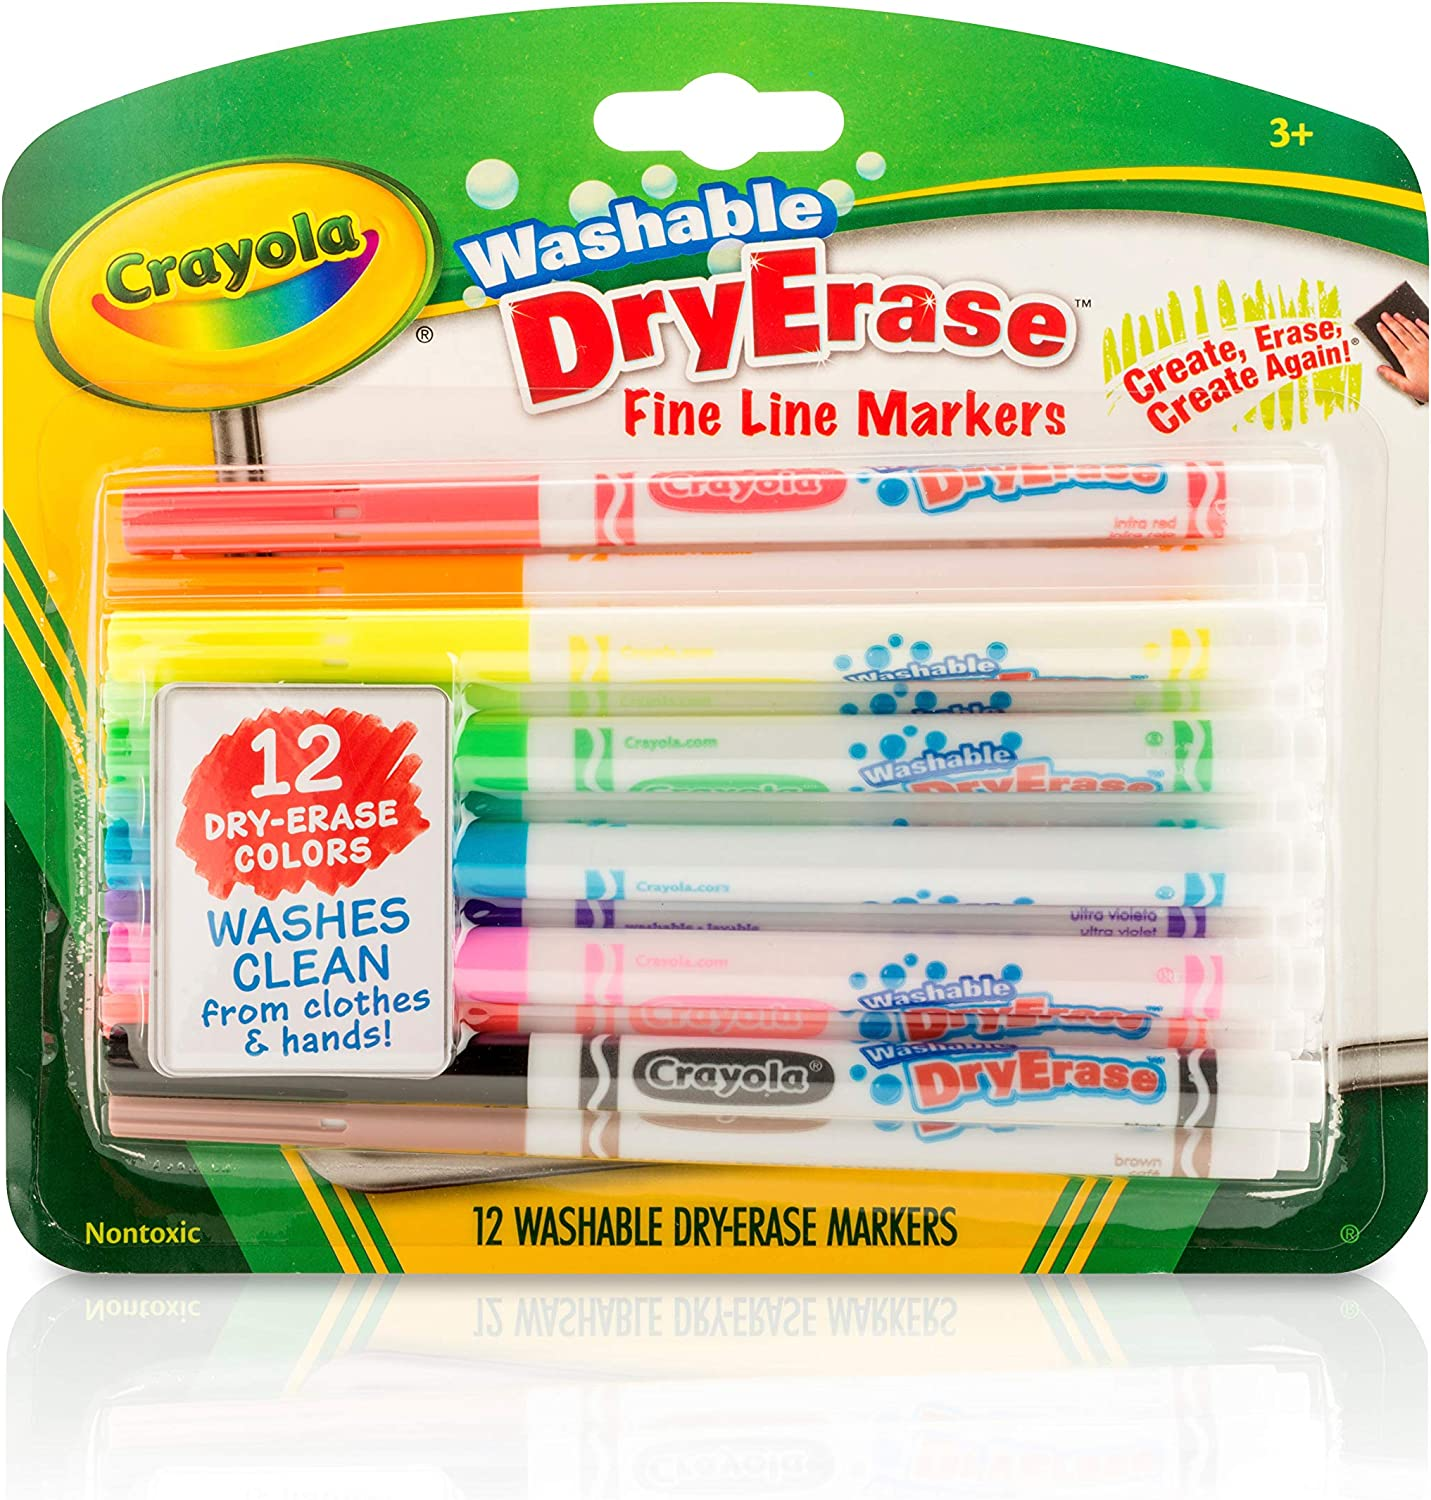 Crayola 98-5912 Washable Dry-Erase Fine Line Markers, 12 Classic Colors Non-Toxic Art Tools for Kids & Toddlers 3 & Up, Easy Clean Up, Won't Stain..